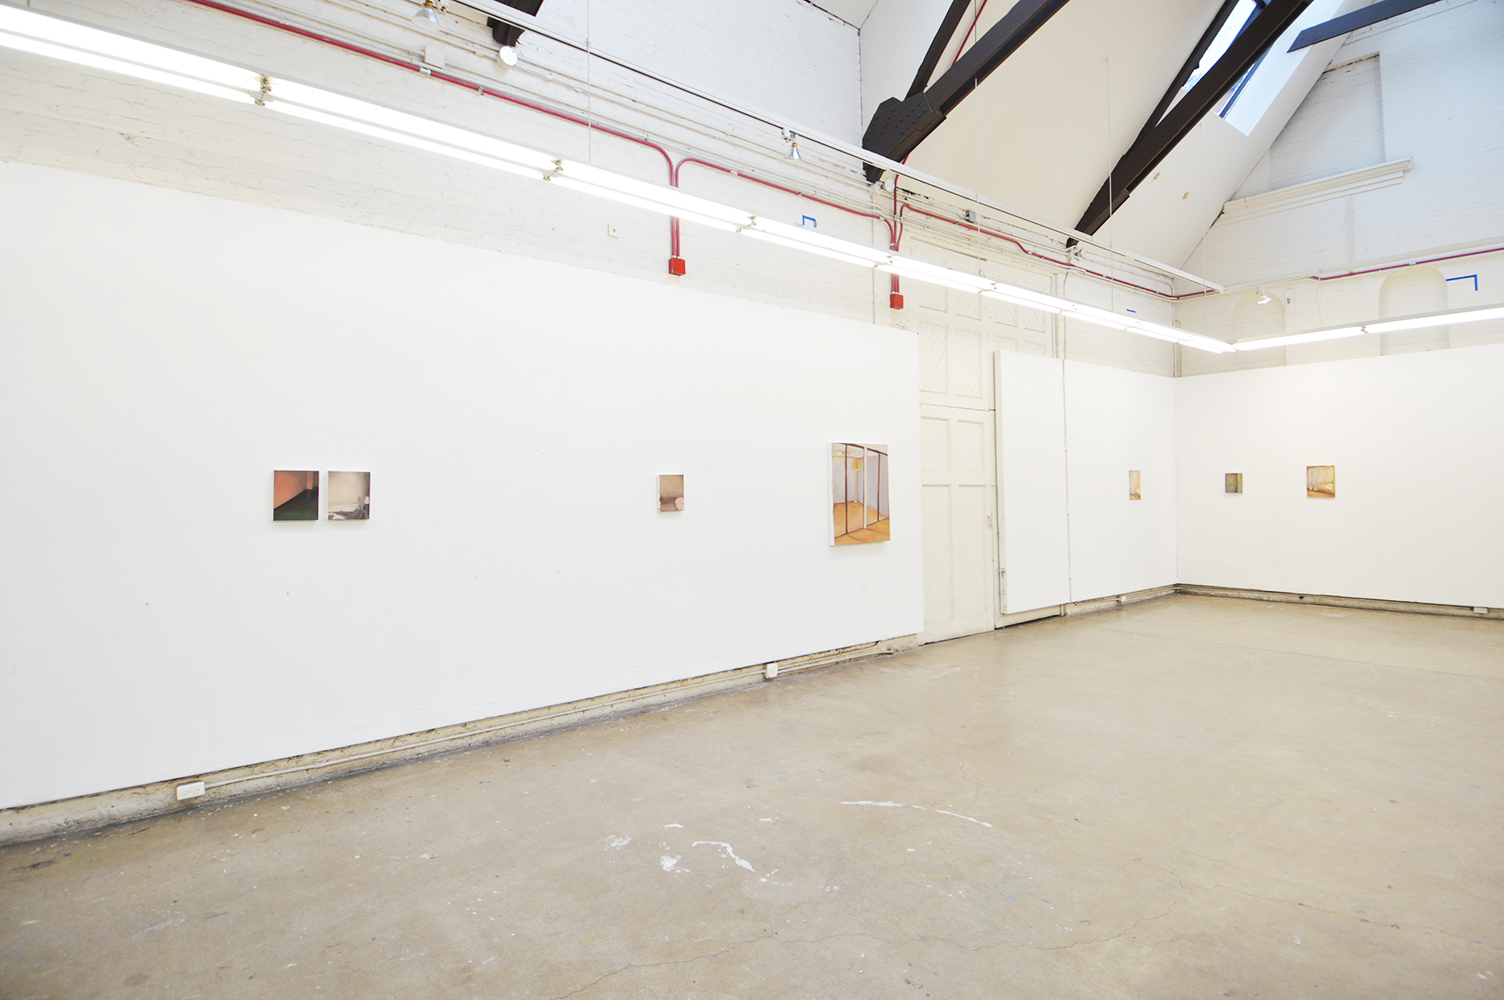 Installation view, Midway Studios